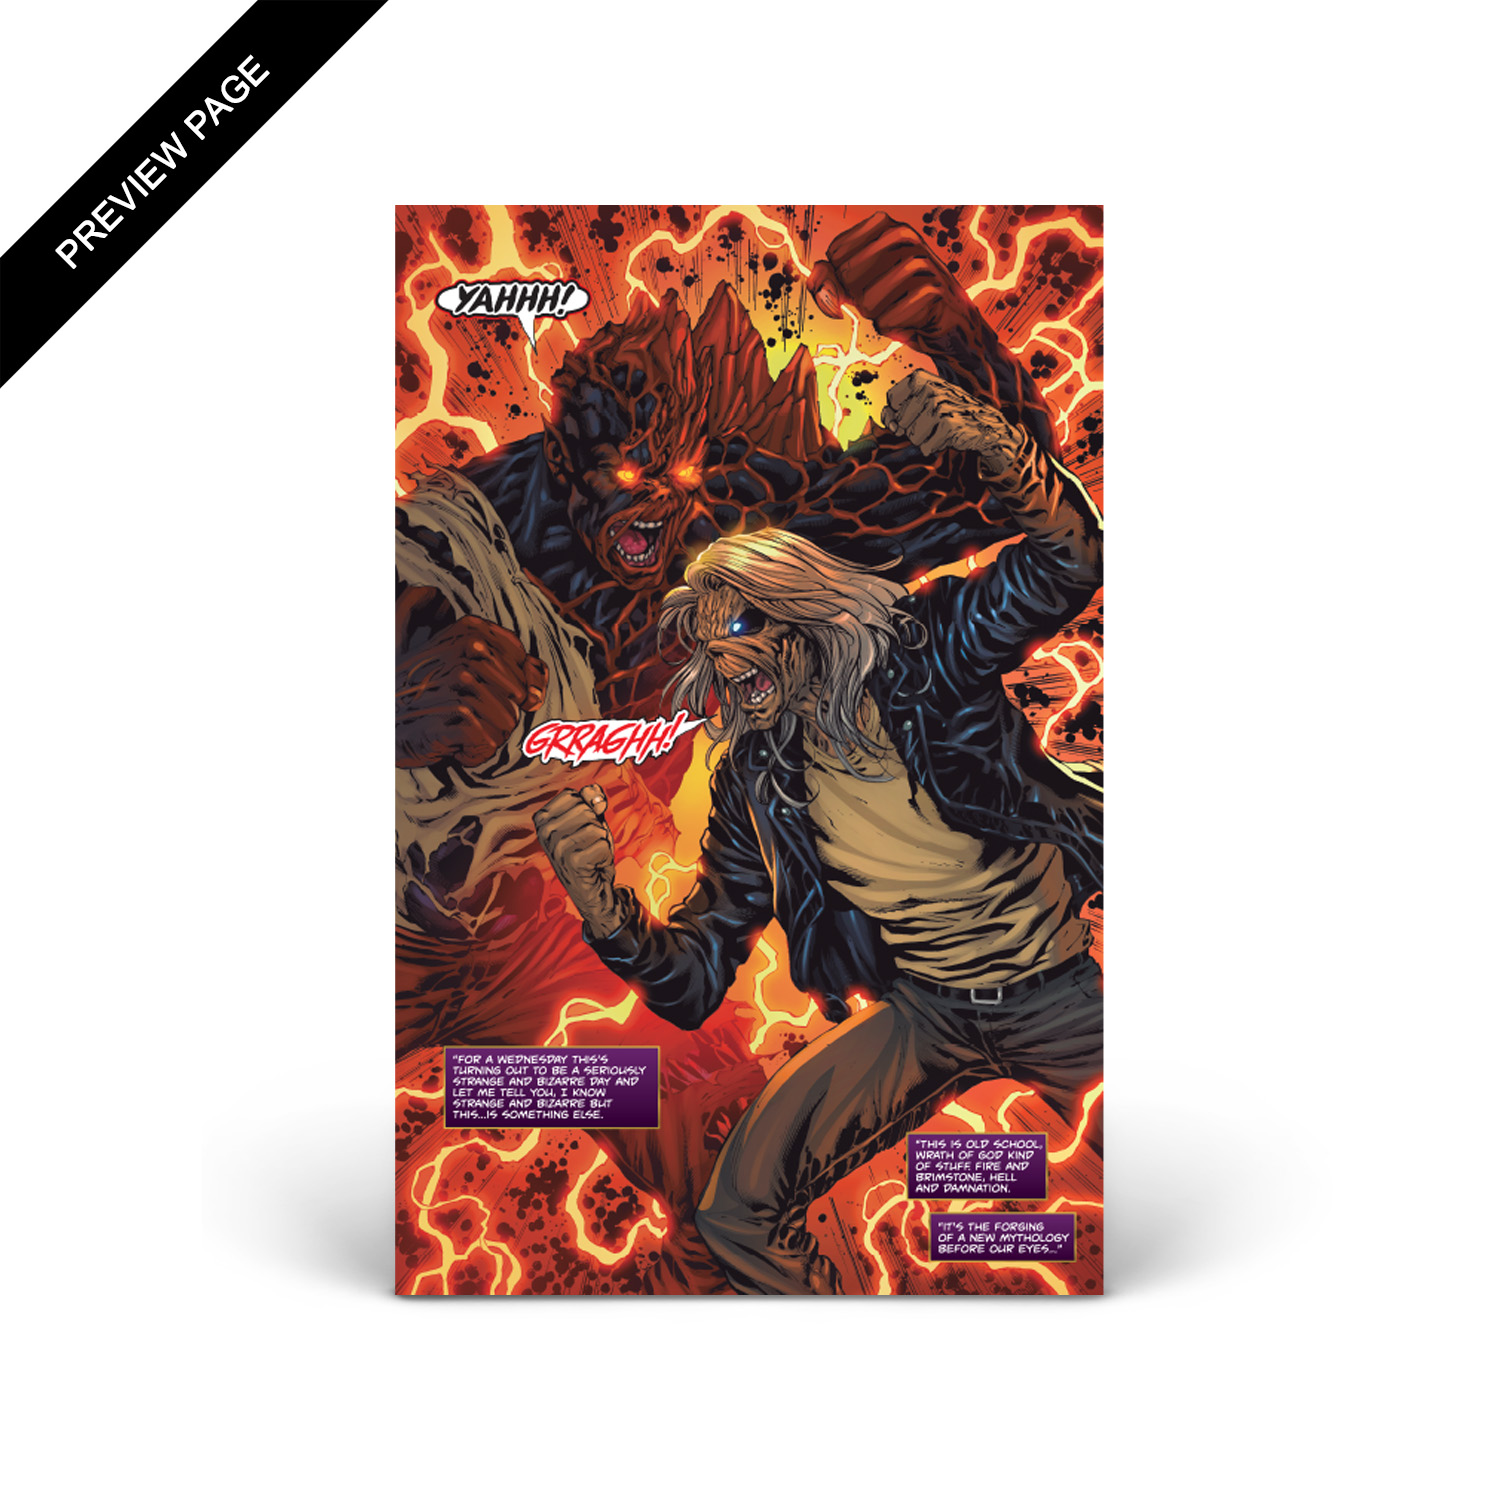 Iron Maiden - Legacy of the Beast - Volume 2 - Issue #3 - Cover C